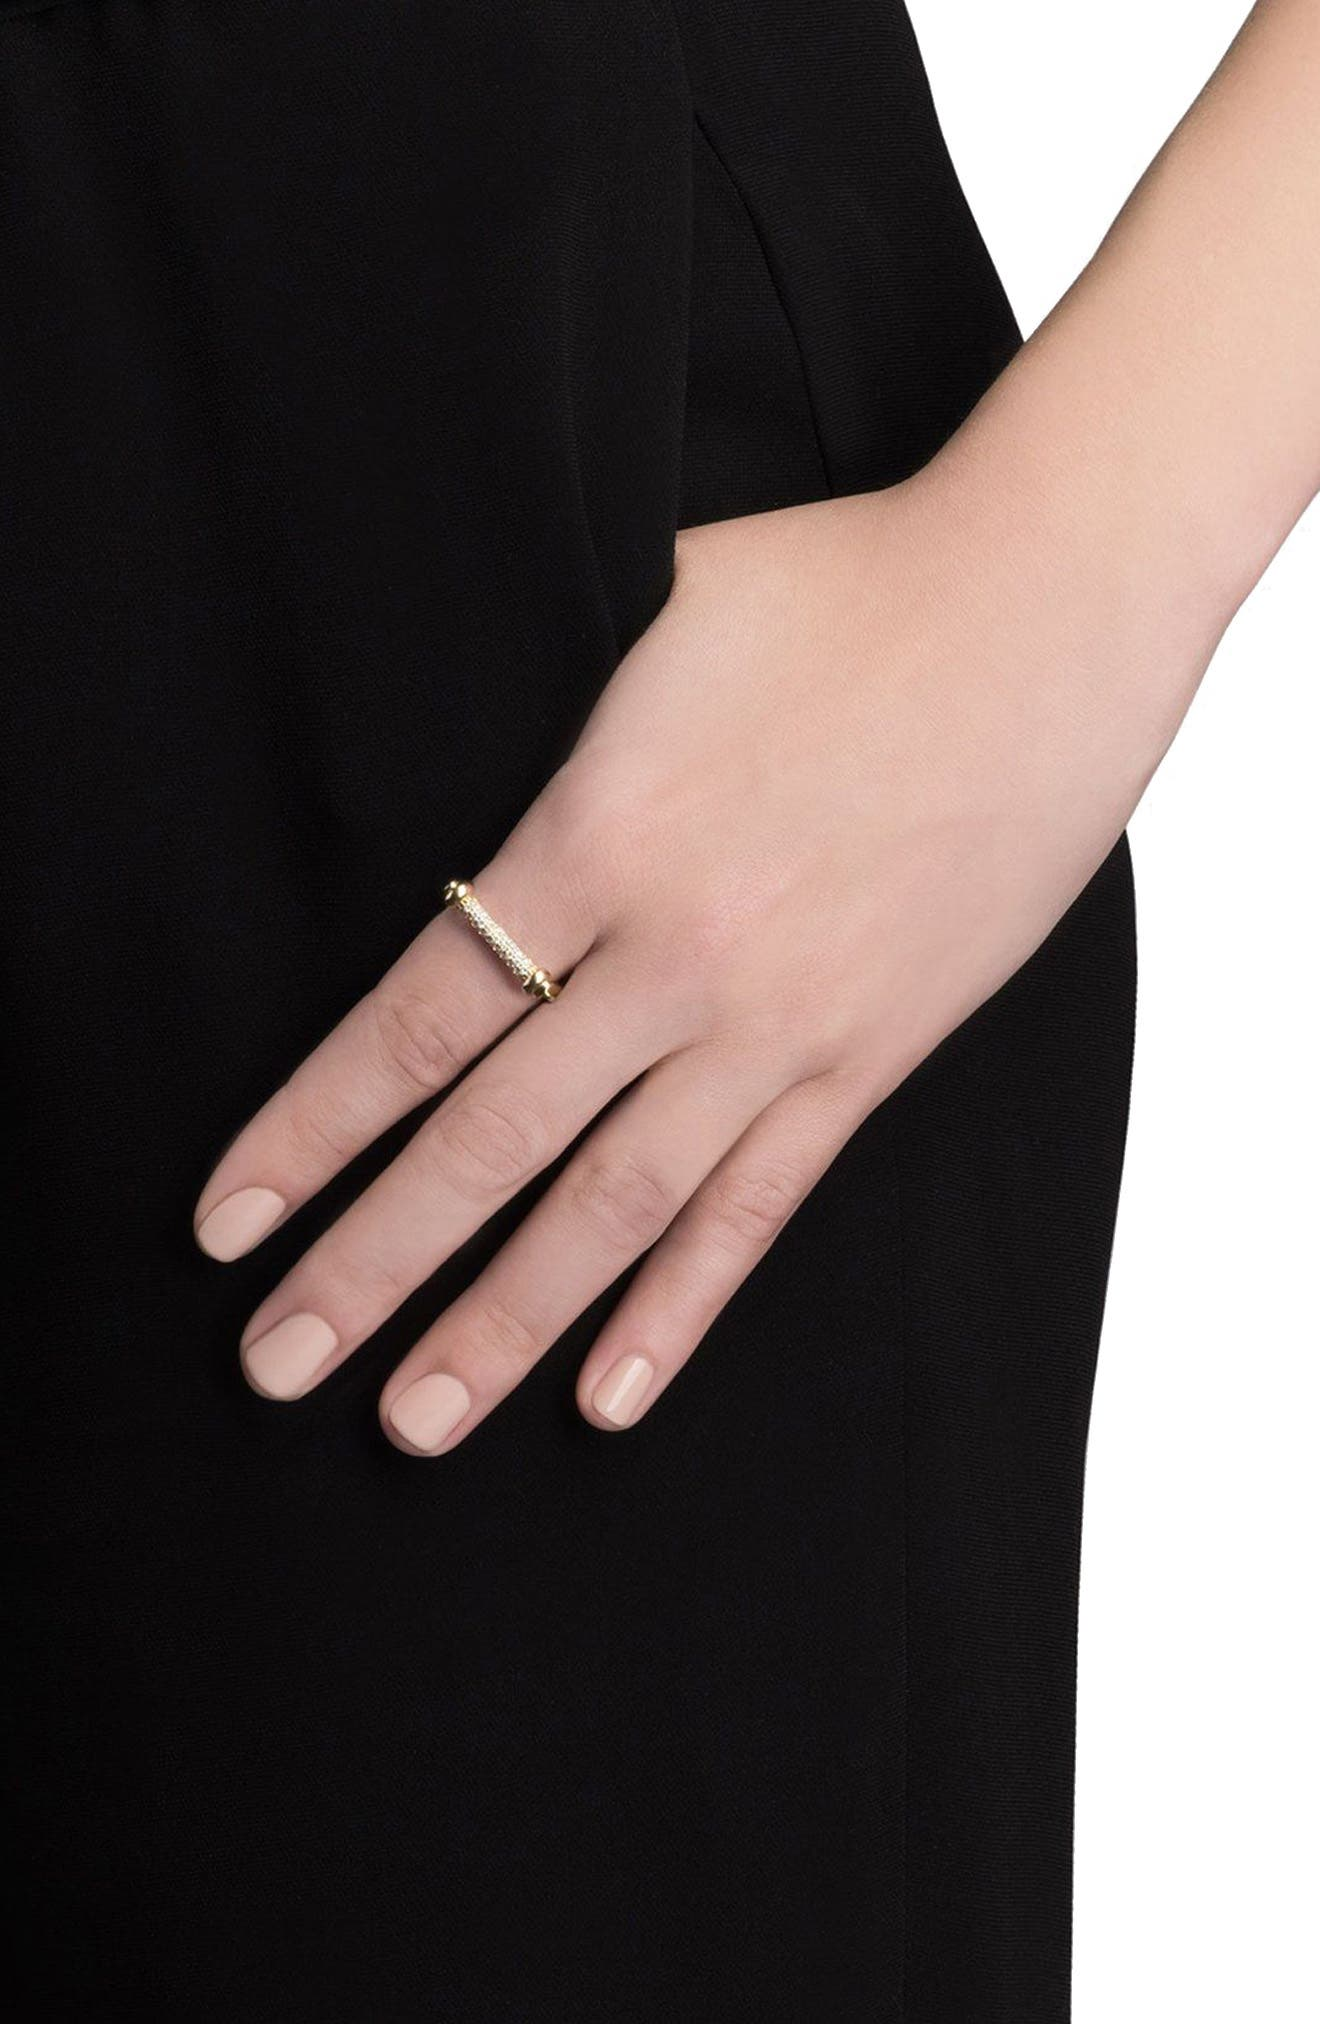 White Sapphire Thin Screw Cuff Ring,                             Alternate thumbnail 2, color,                             Polished Gold/ White Sapphire